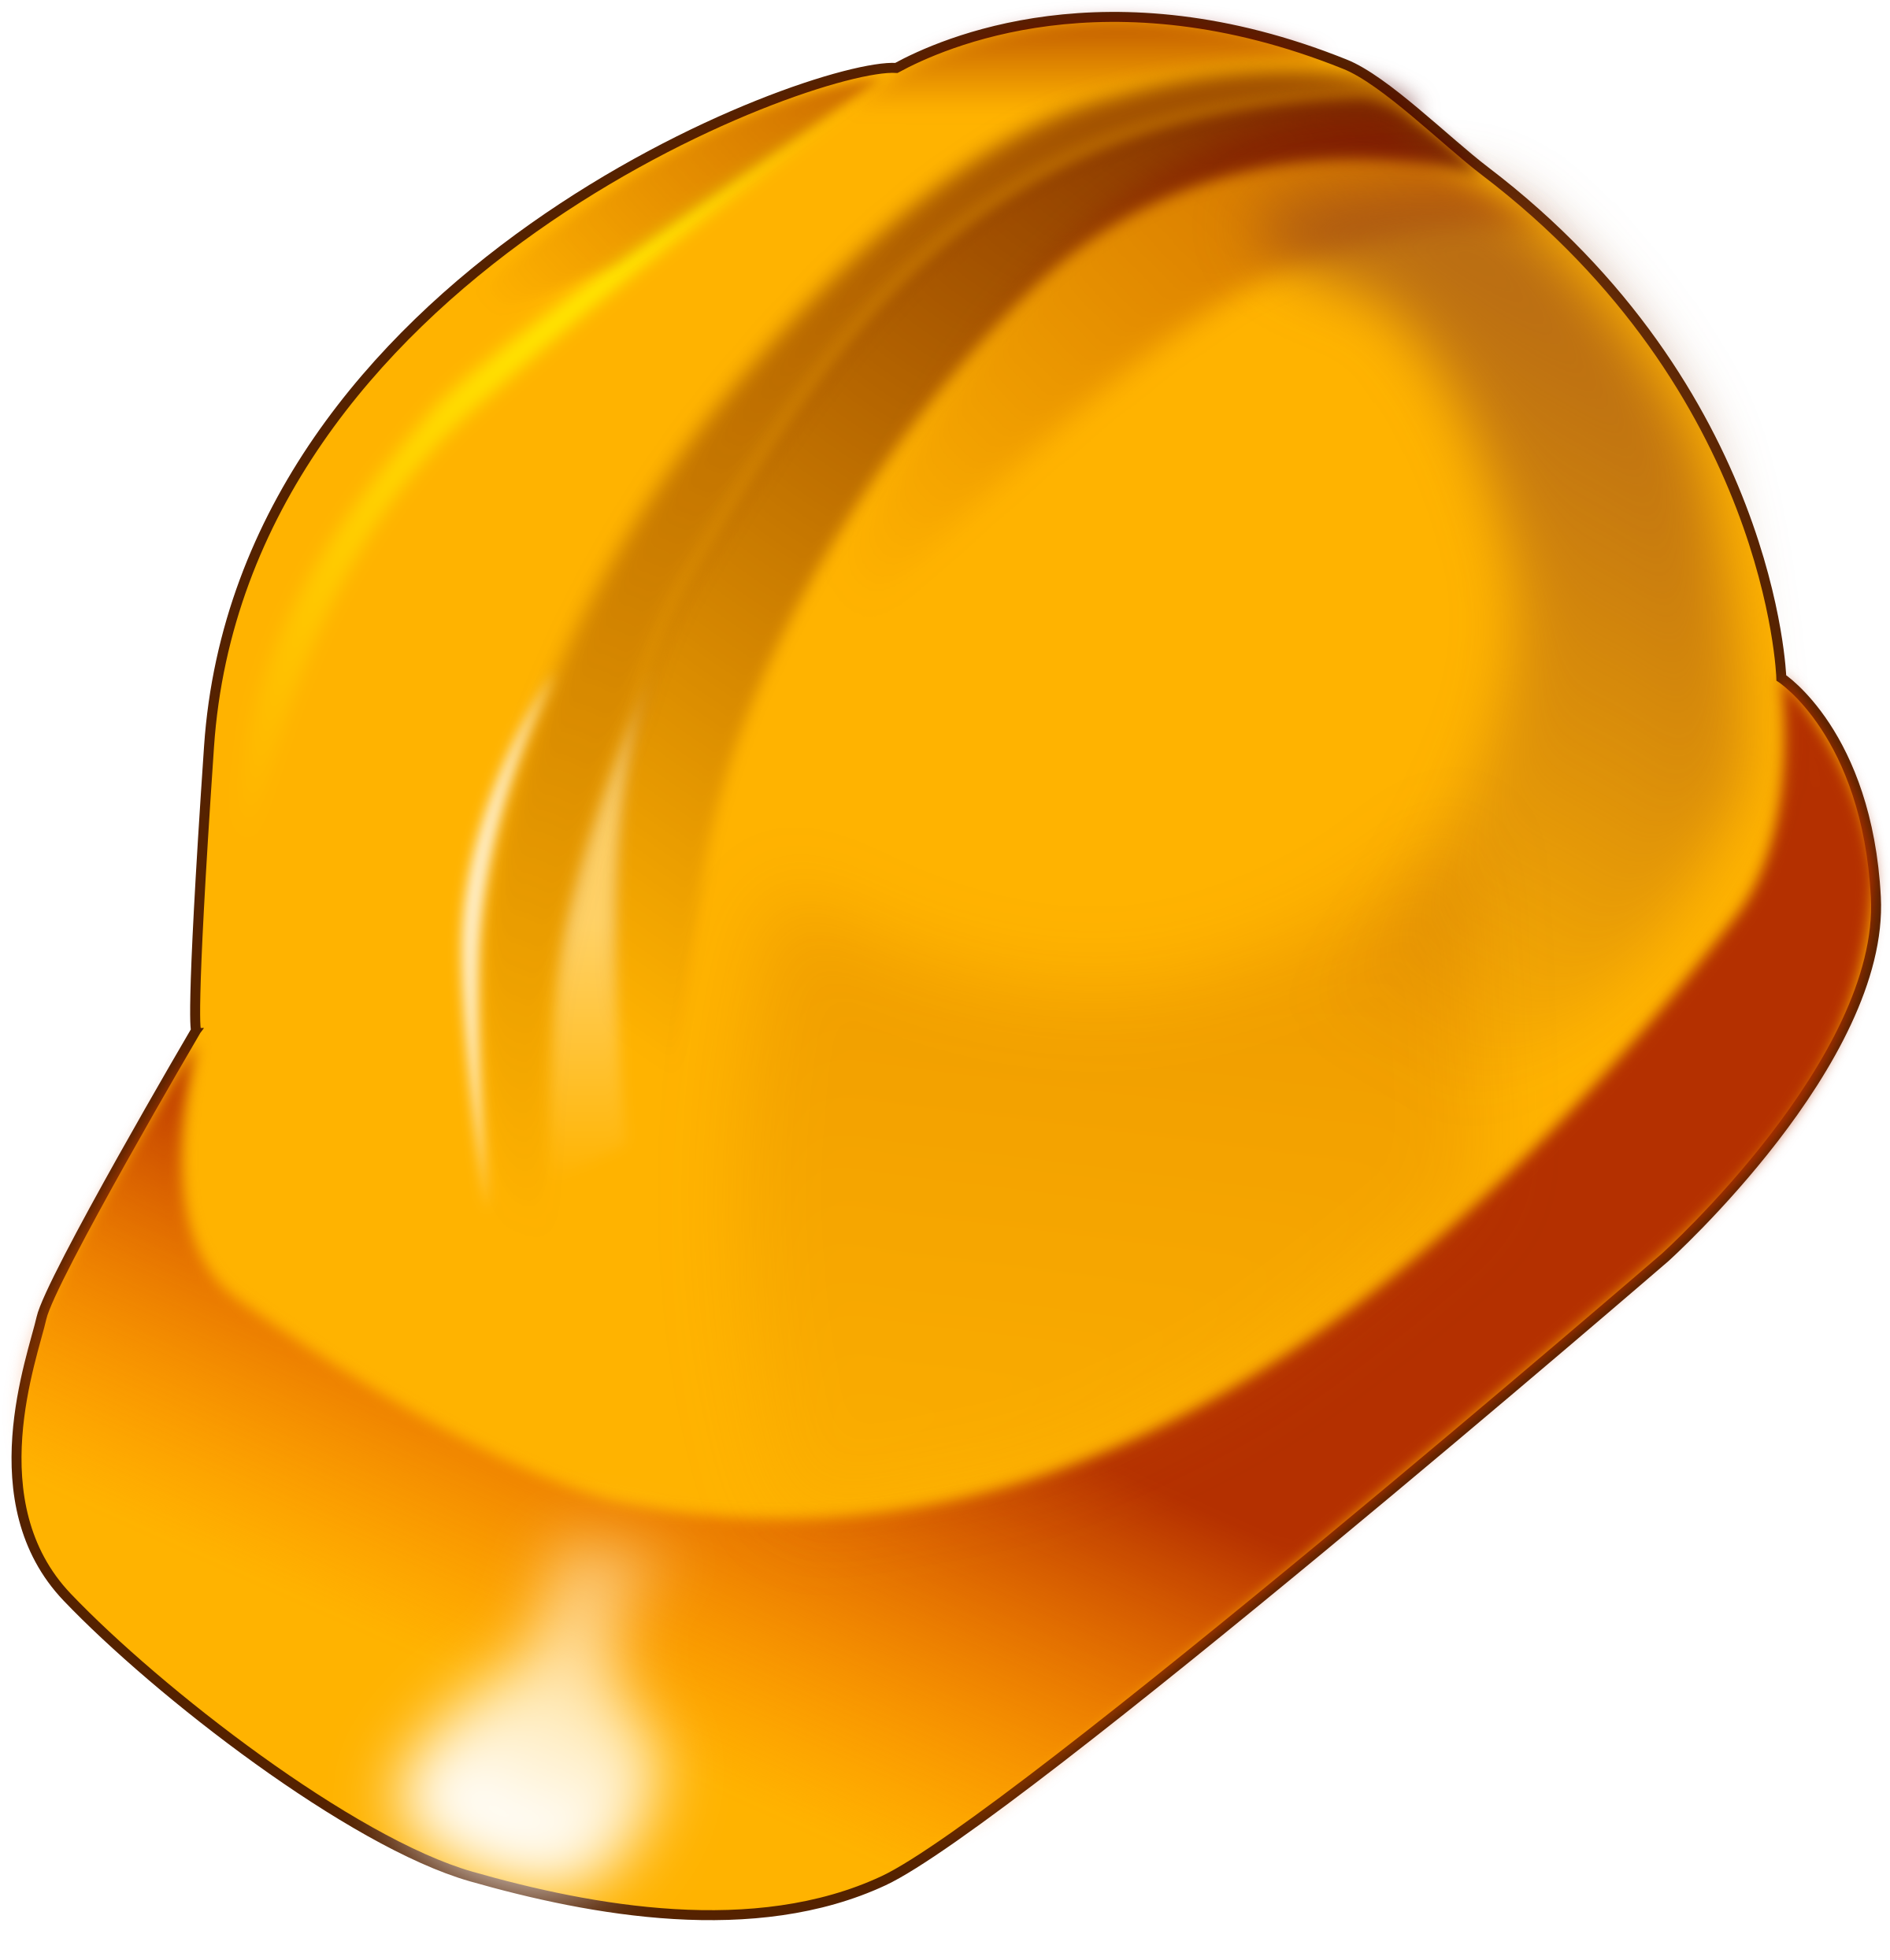 Axe clipart hard object. Construction hat at getdrawings